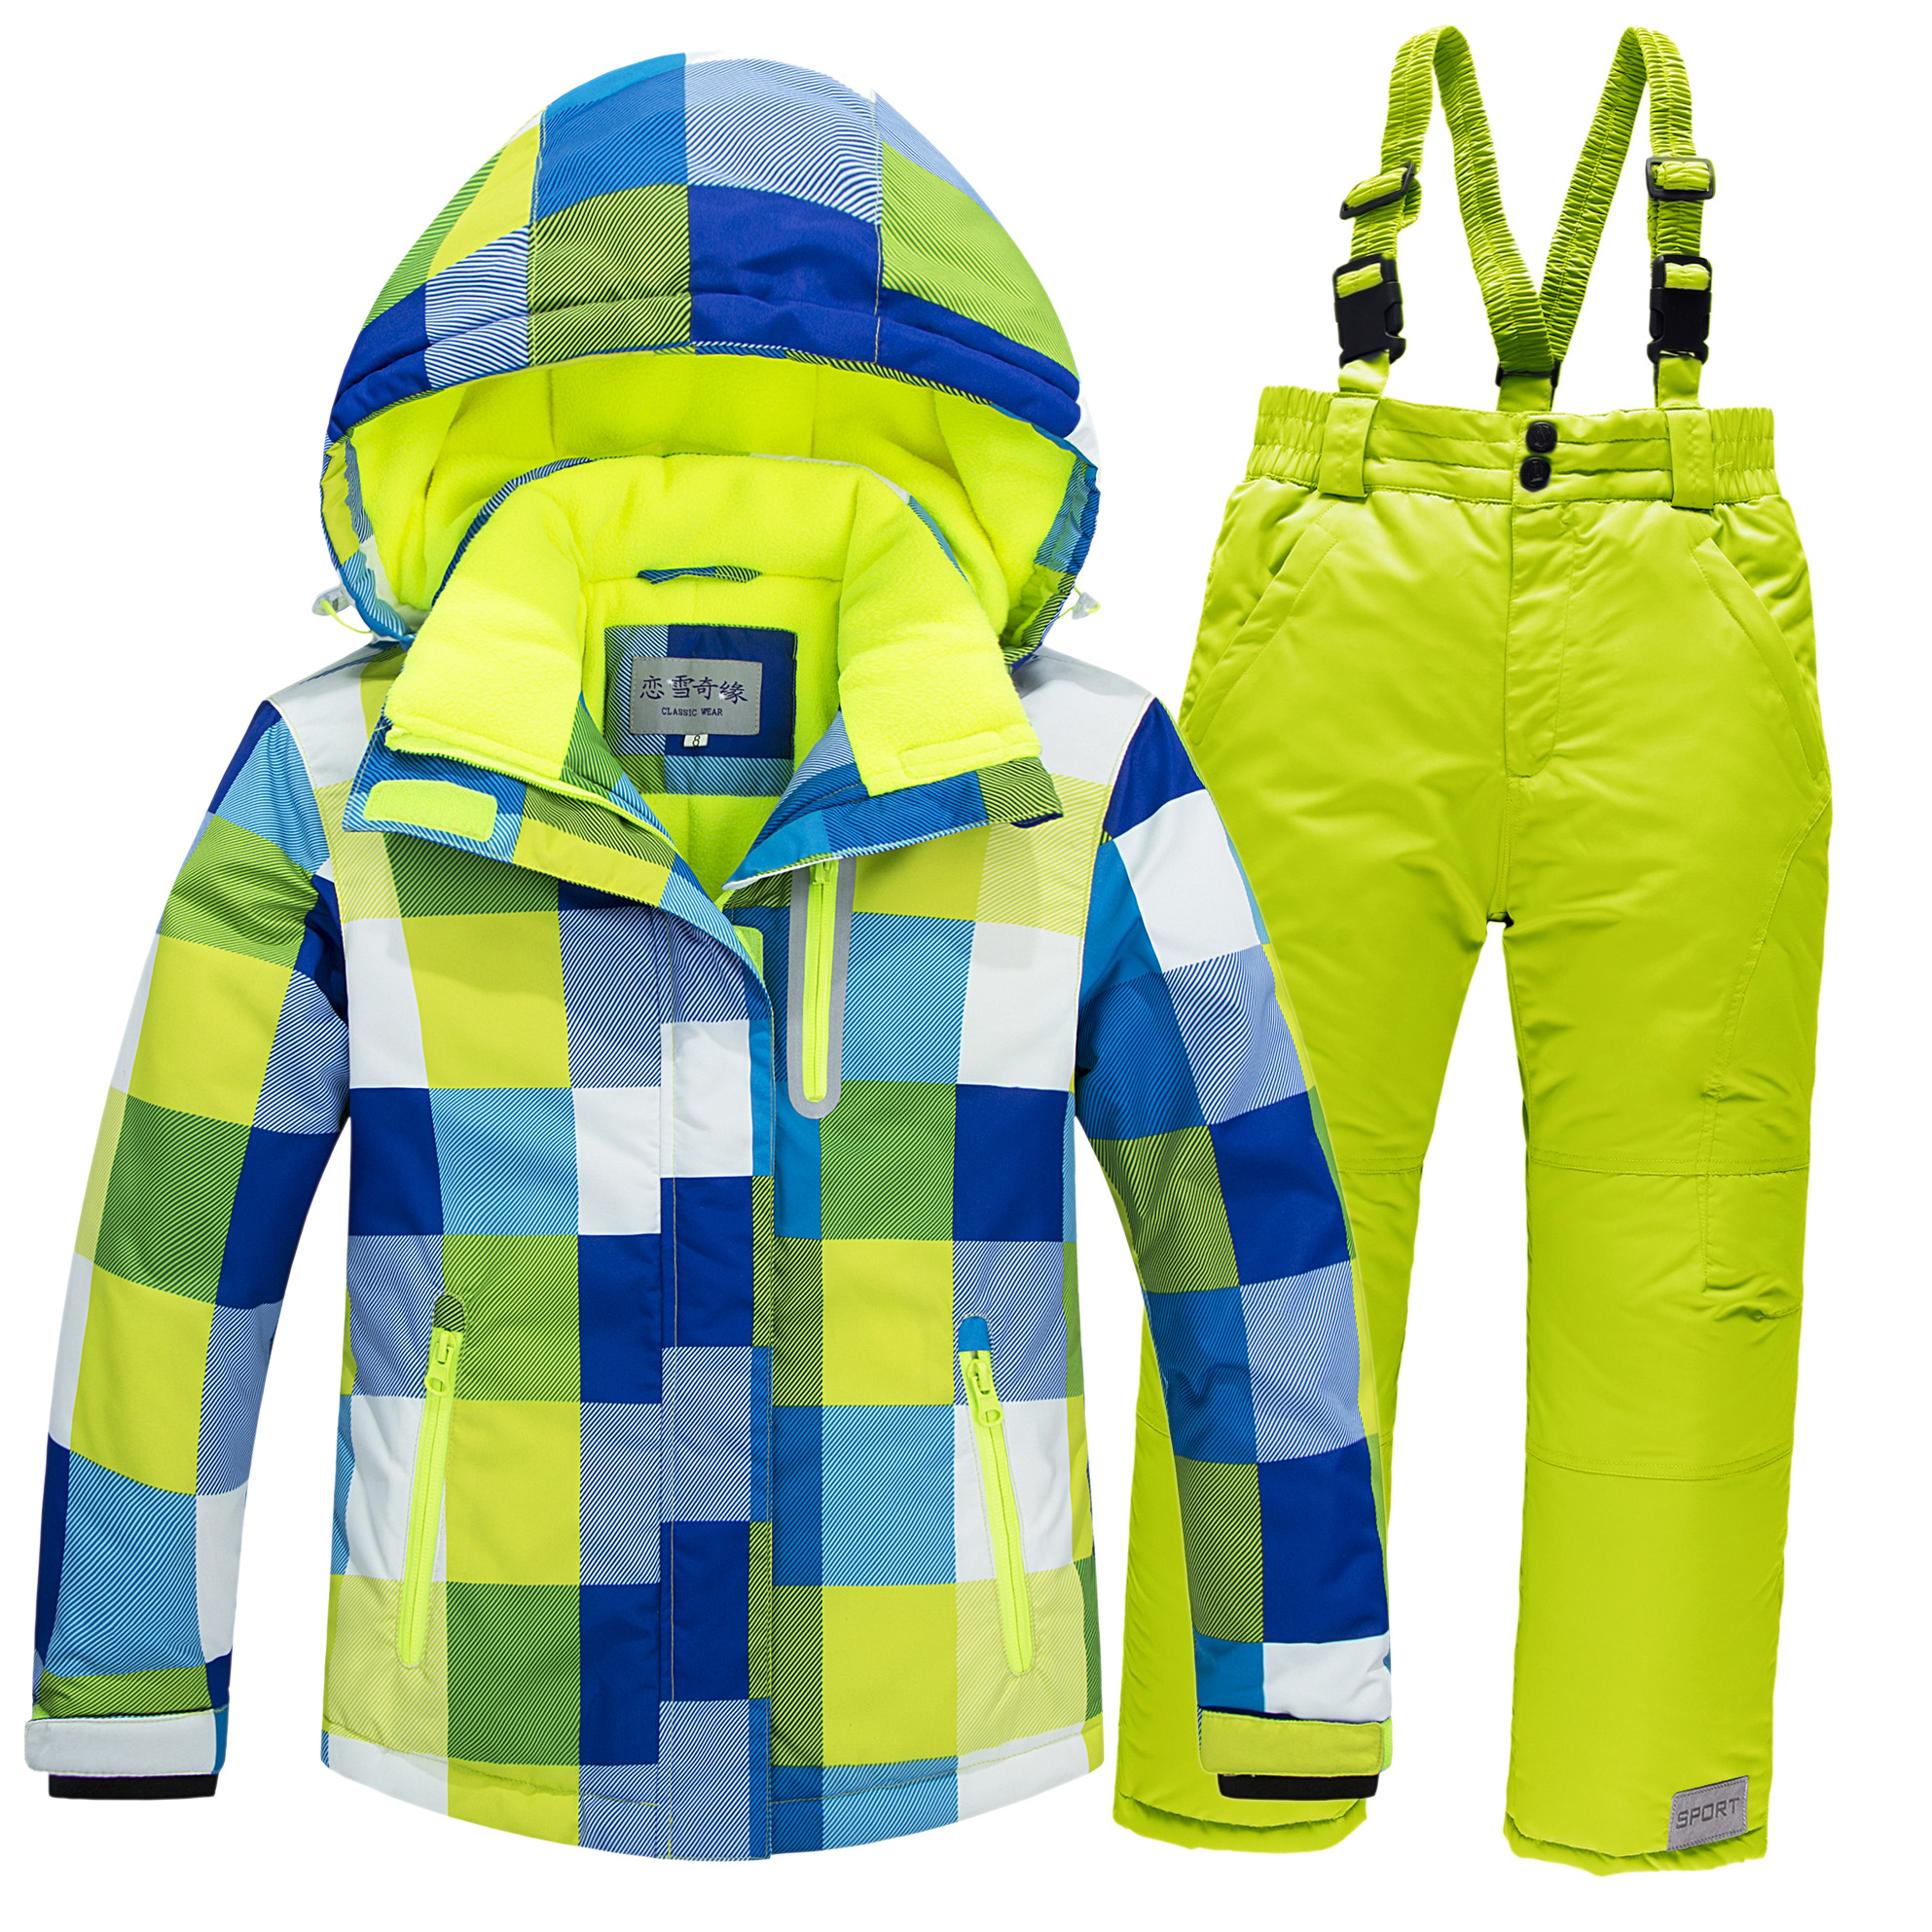 Winter Children Ski Suit Windproof Warm Girls Clothing Set Jacket + Overalls Boys Clothes Set Kids Snow Suits Family parenting 2016 winter boys ski suit set children s snowsuit for baby girl snow overalls ntural fur down jackets trousers clothing sets